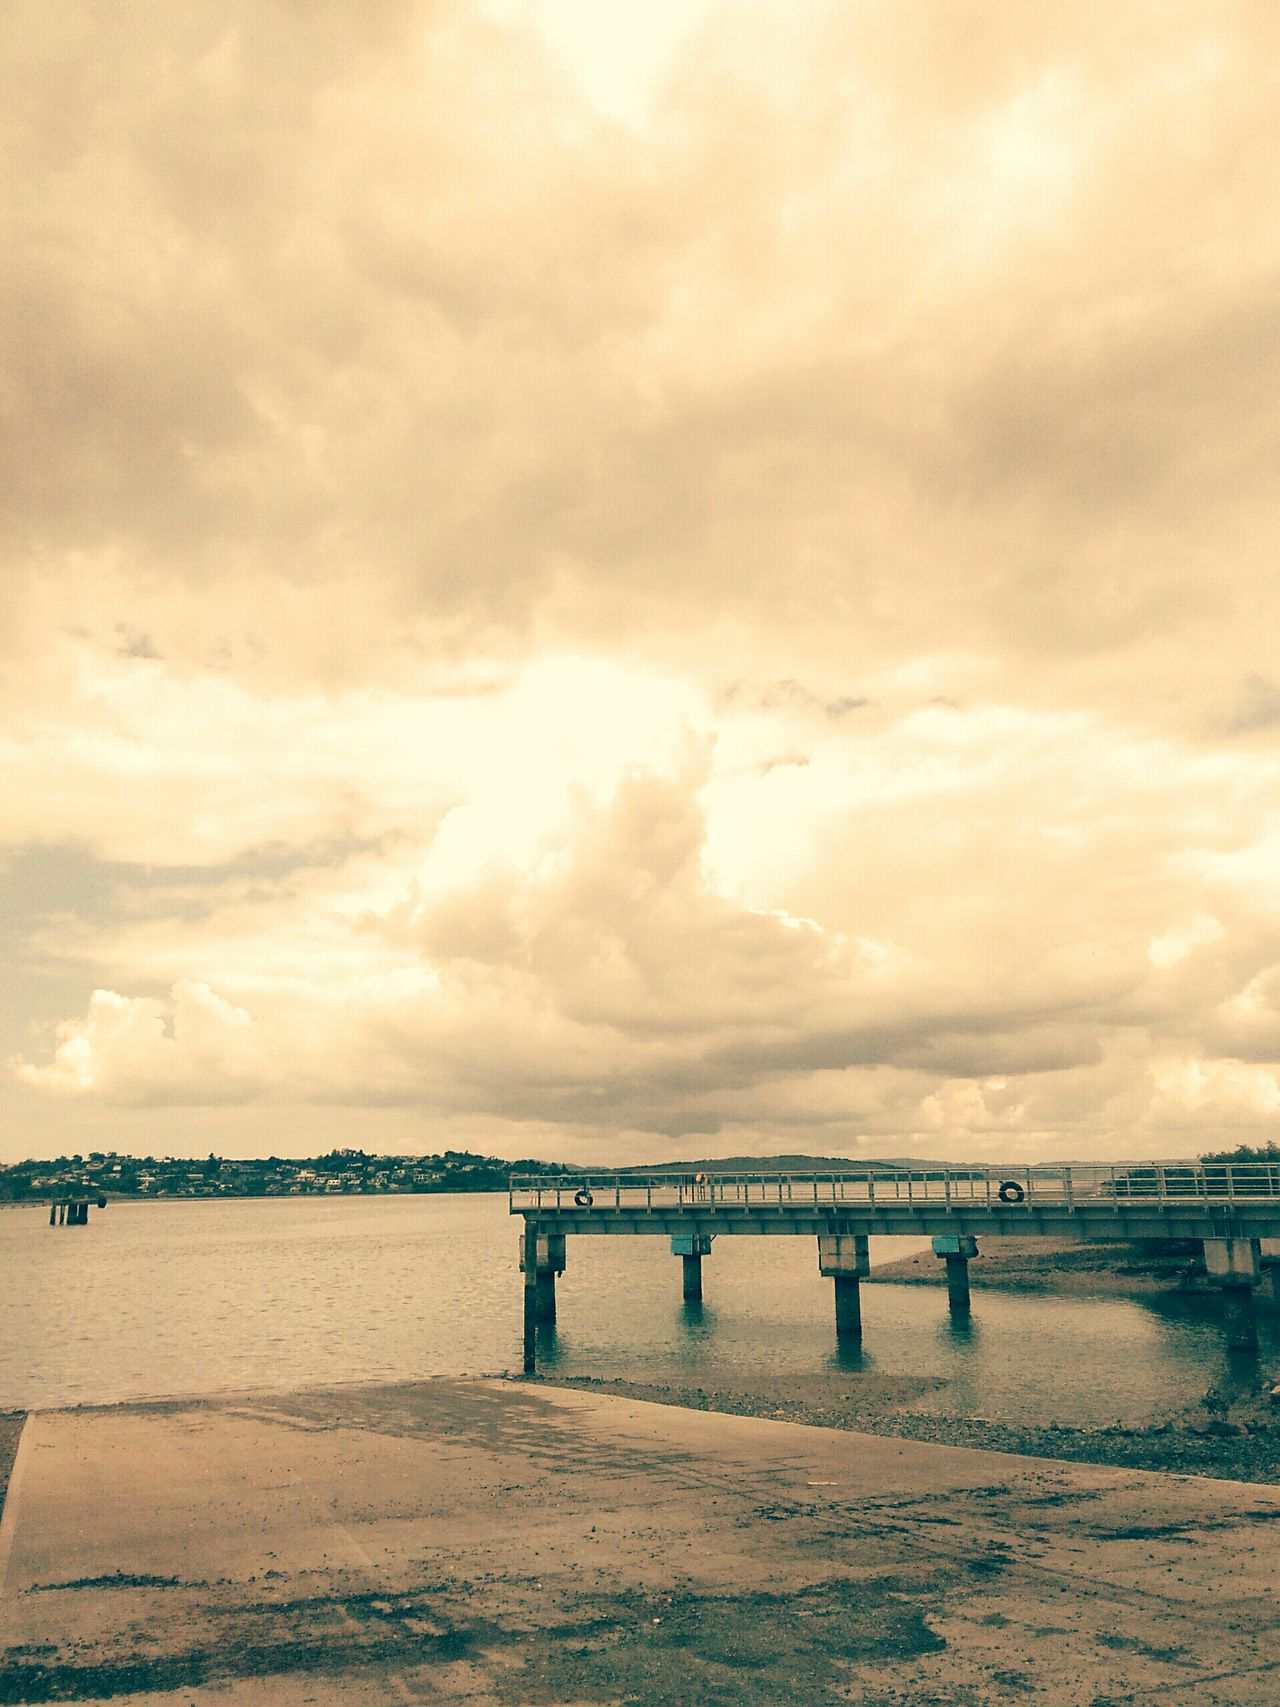 Bridge - Man Made Structure Railing Sea Beauty In Nature Water Outdoors Sky No People Nature Day Clouds And Sky Waterfront Scenics Nature Whangarei New Zealand Port Beauty In Nature Weather Photography Stormclouds Cloud - Sky Pier Tranquility Horizon Over Water